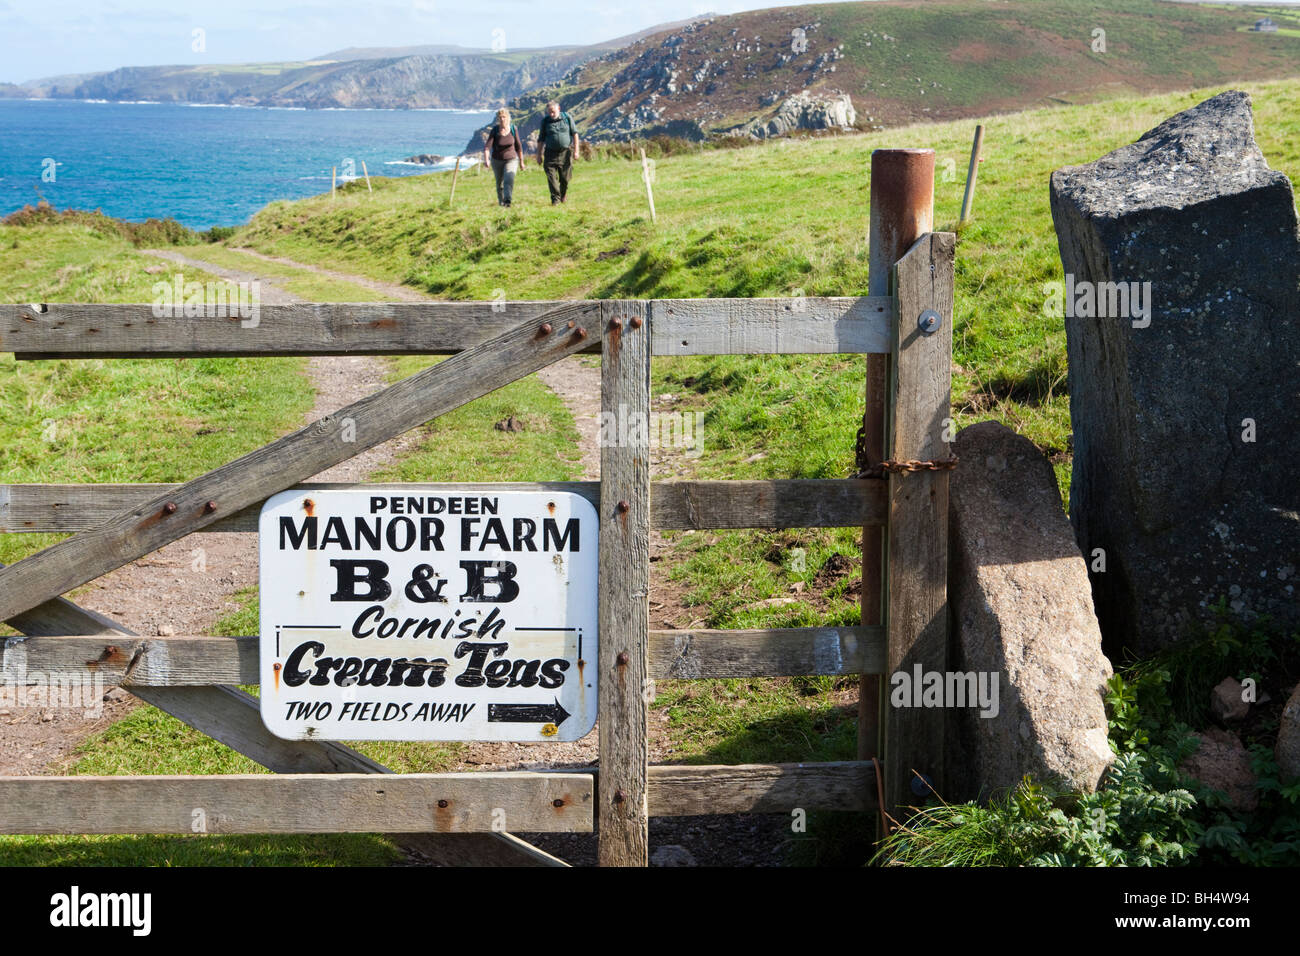 Notice for Manor Farm (B&B and Cornish cream teas) at Pendeen Watch/Porteras Cove, Pendeen, Cornwall - Stock Image